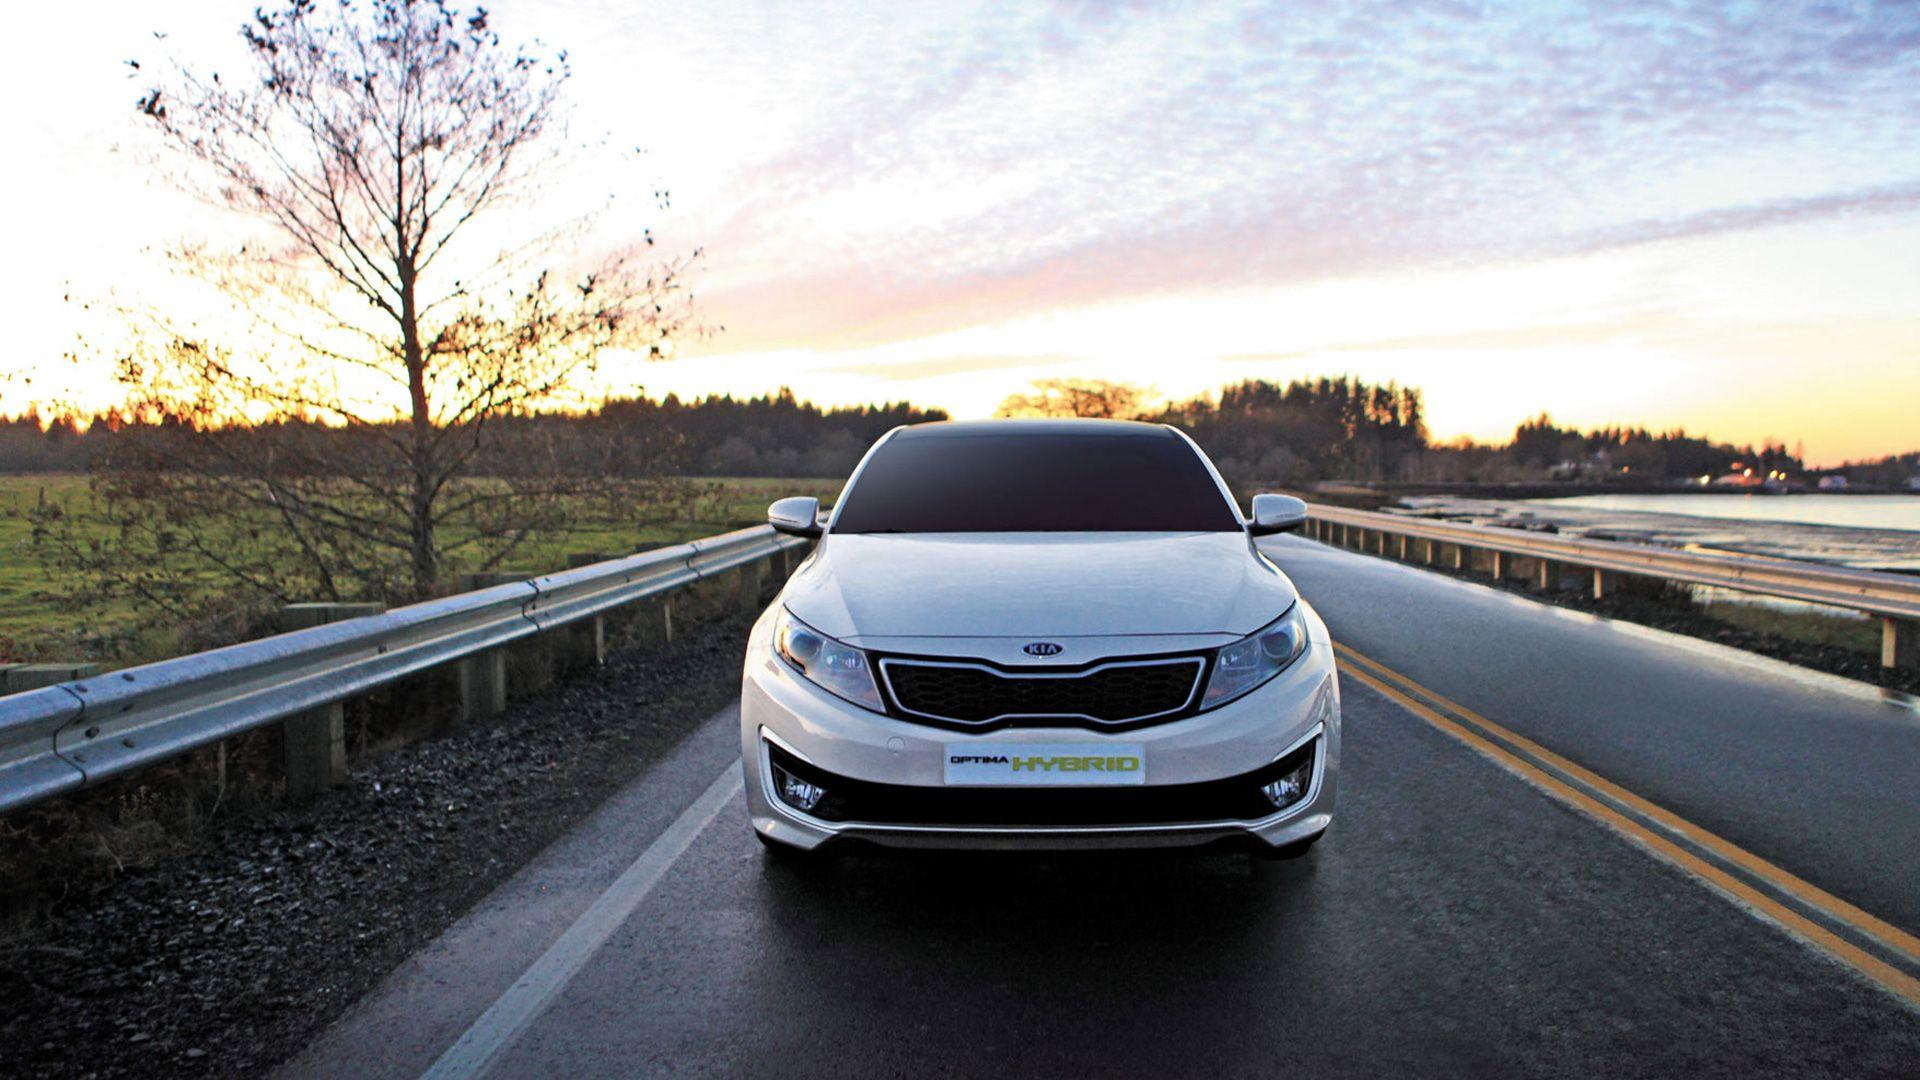 Front Pose of Kia Optima Hybrid On Highway Wallpaper